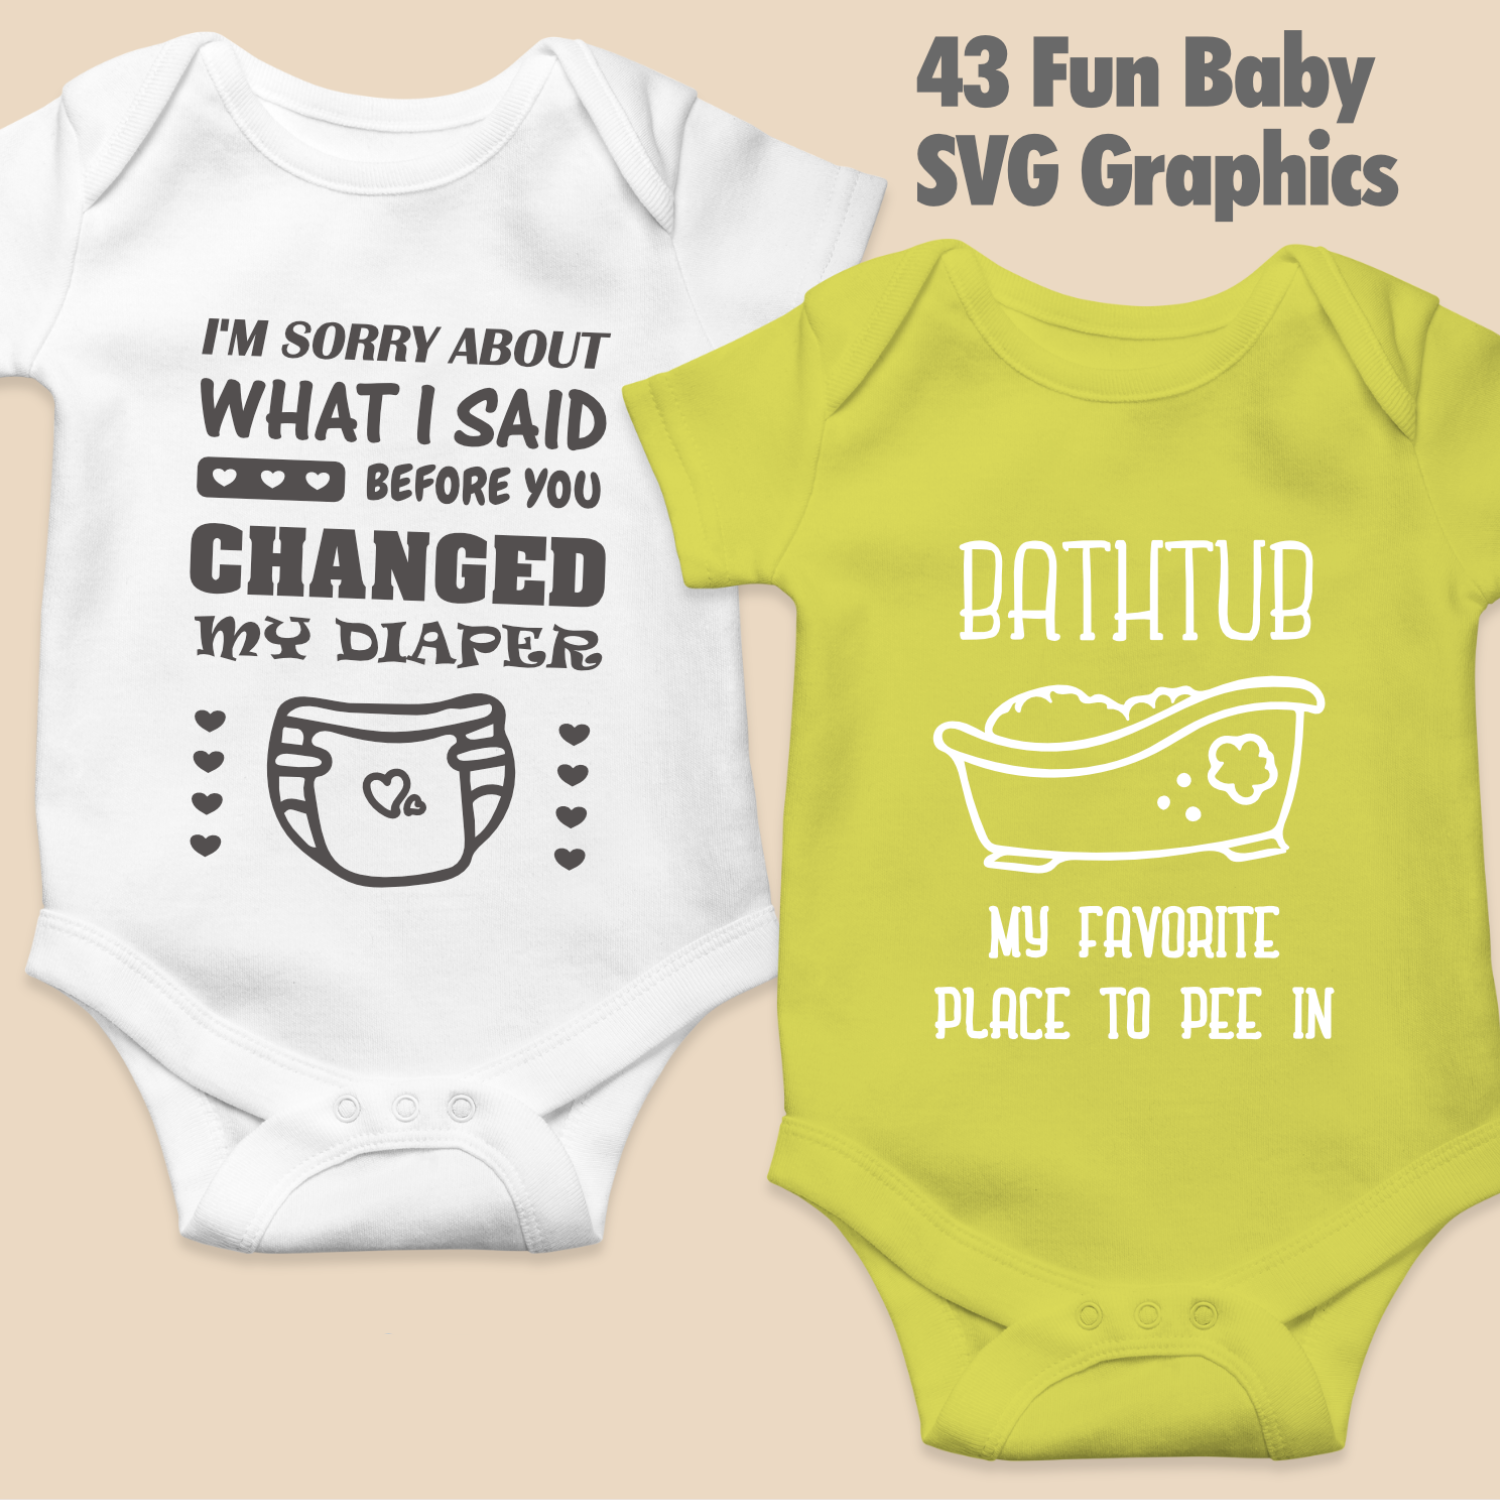 Fun Baby Svg Bundle With 43 Graphics Illustrations For Baby Onesies Arts By Naty